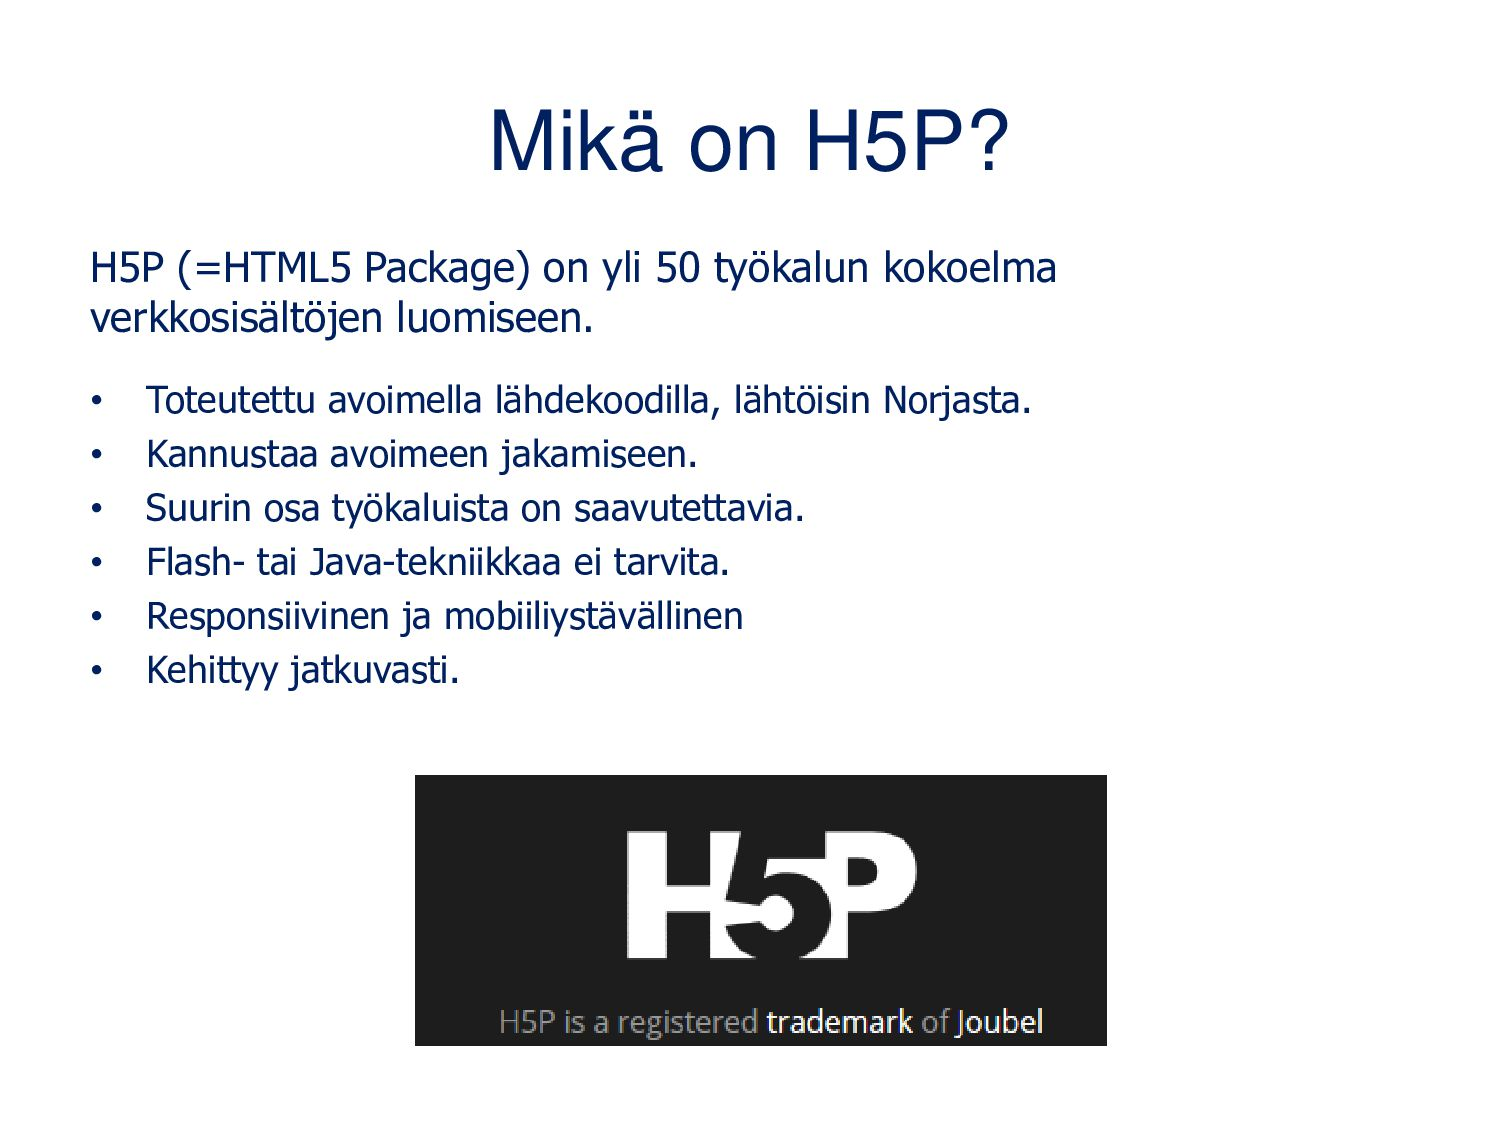 Mikä on H5P? H5P:n (=HTML5 Package) on yli 50 t...